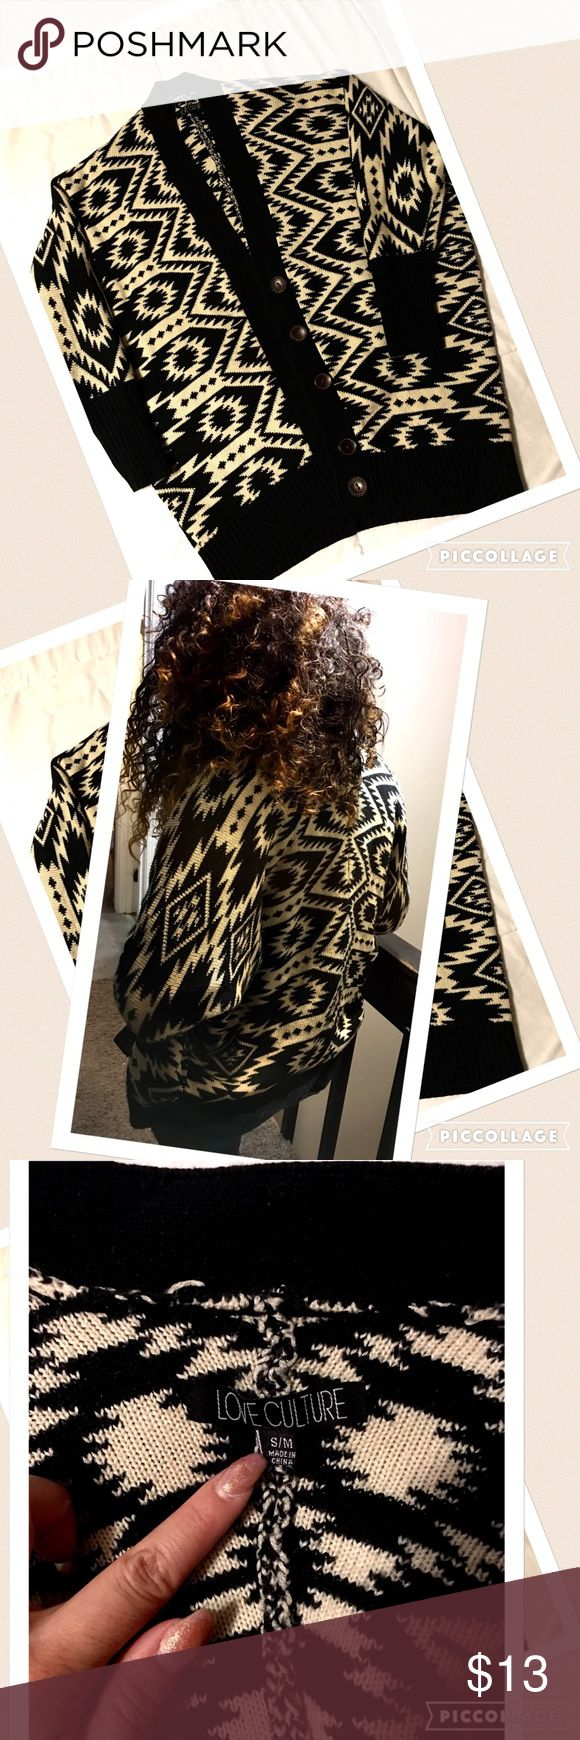 Warm and comfy tribal print sweater! Warm and comfy tribal print sweater! Buttons on front, super cute with jeans and boots! No holes, rips or damage. Love Culture Sweaters